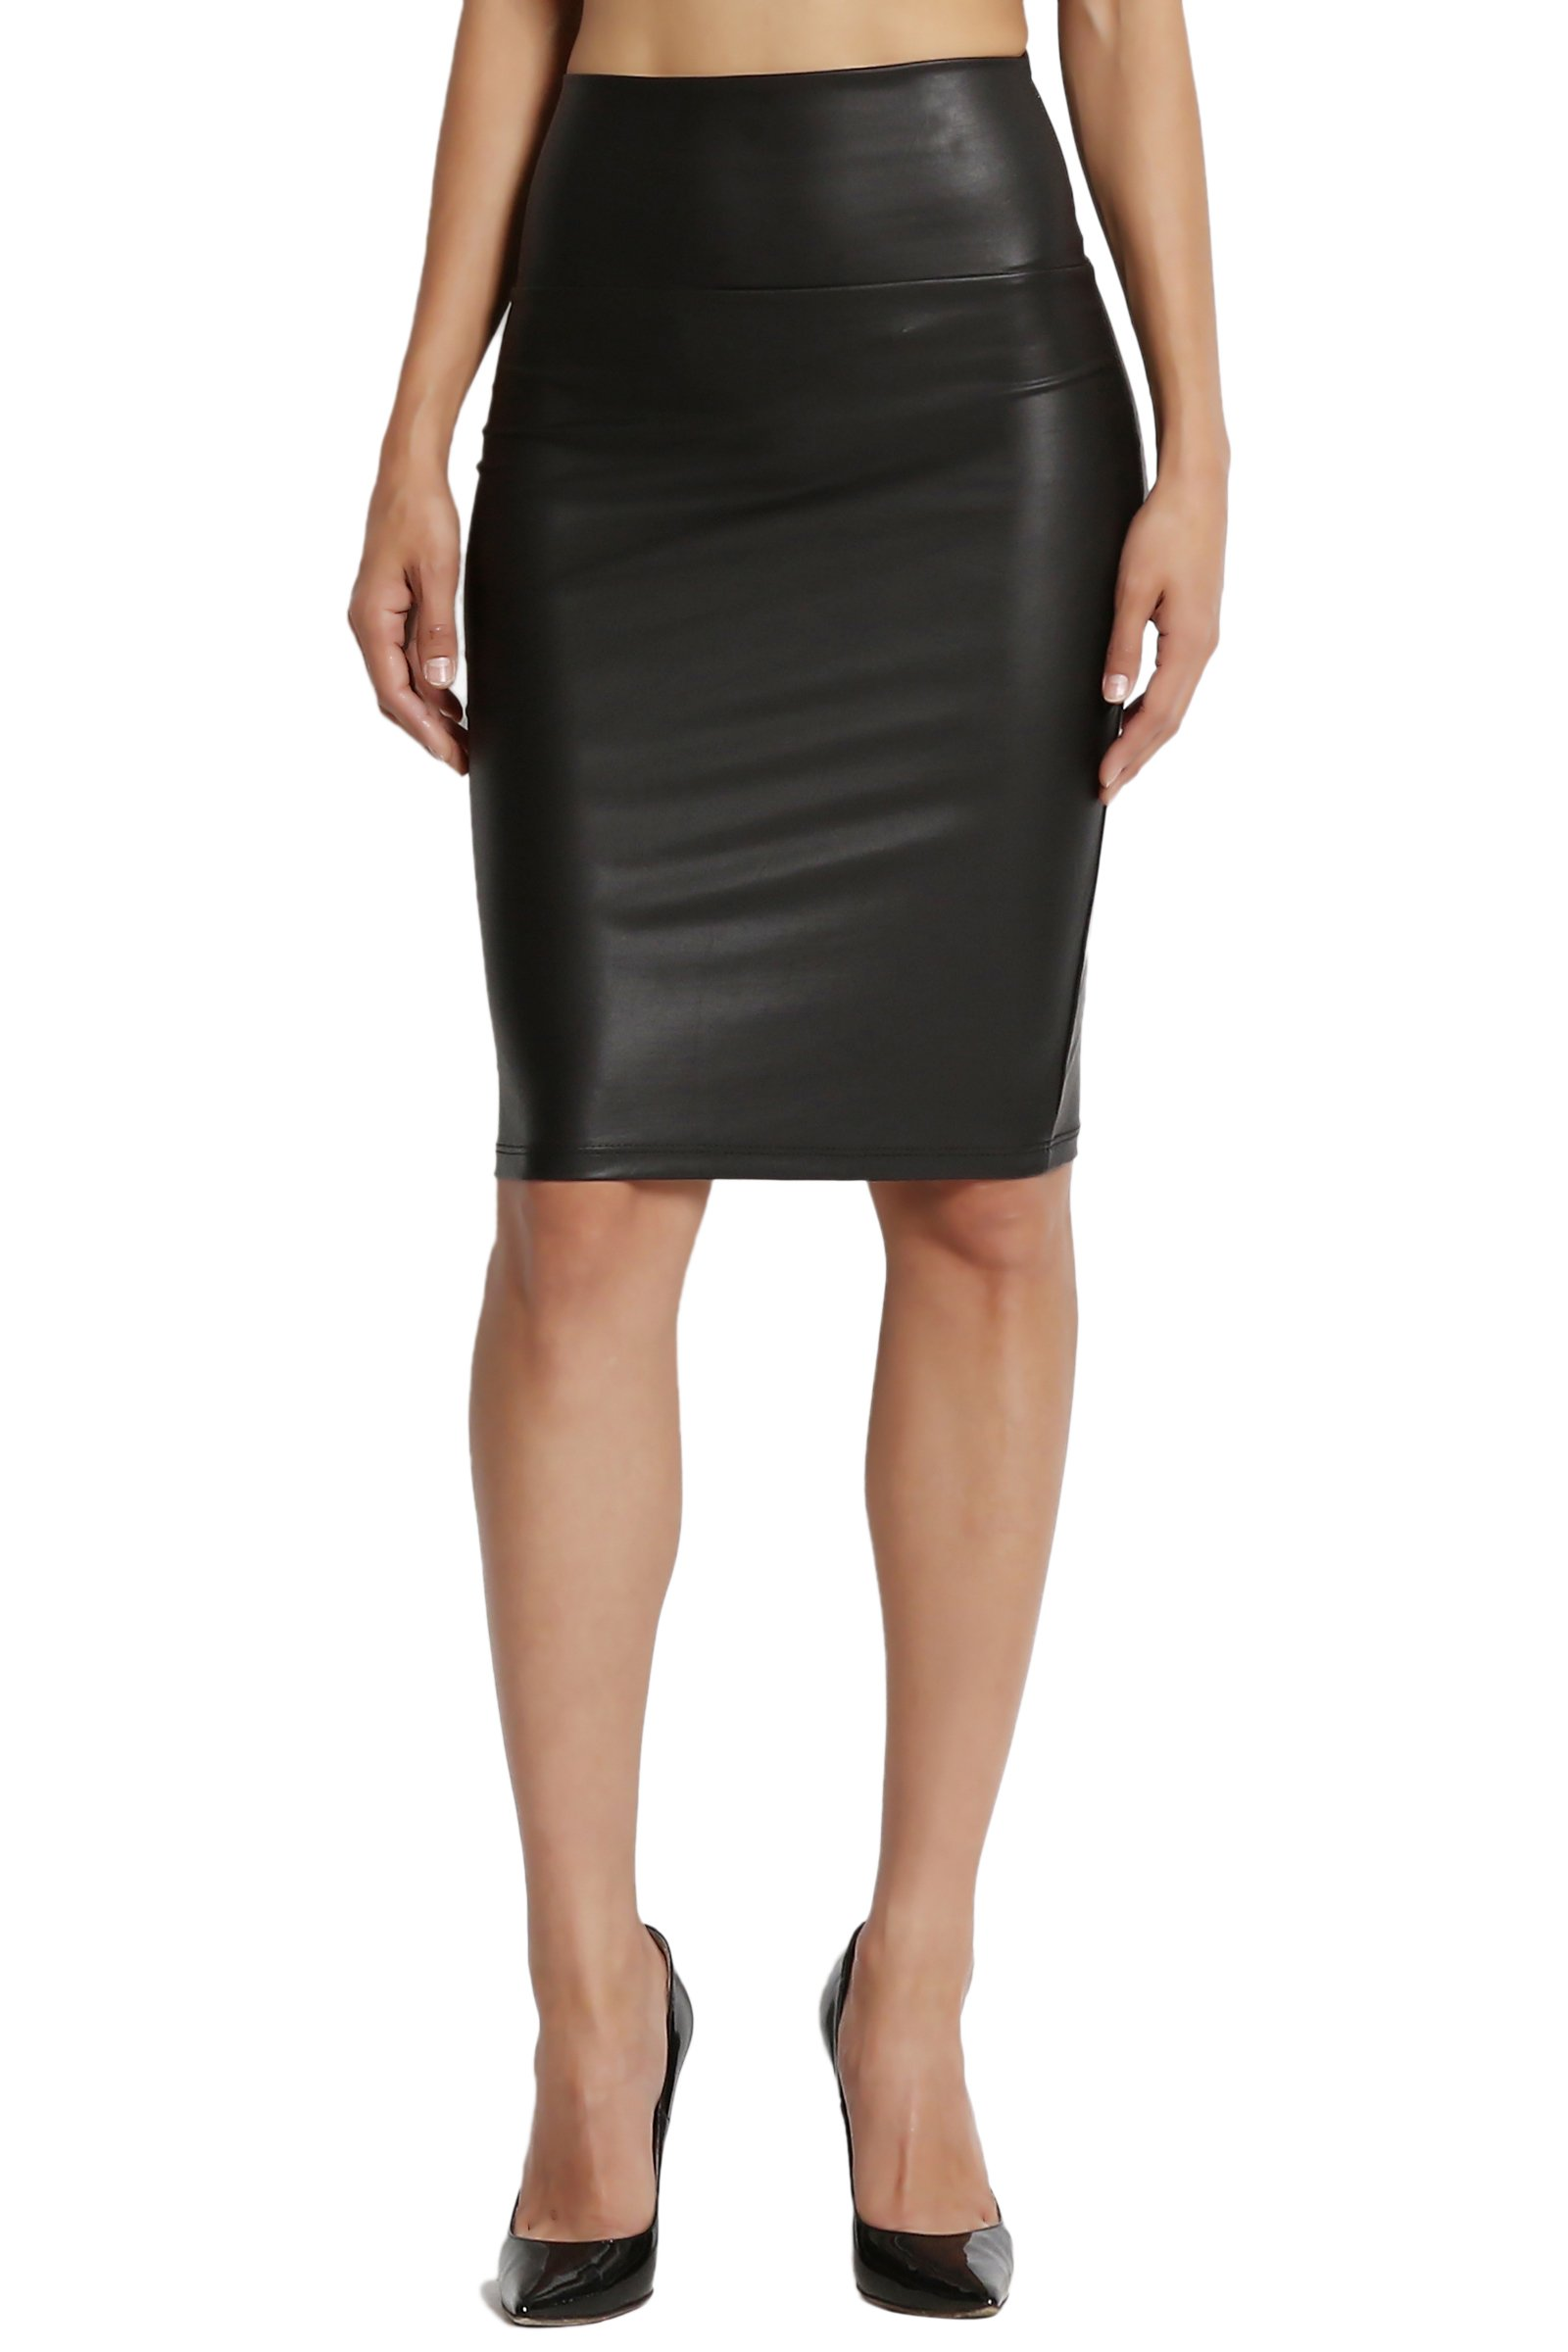 TheMogan Junior's Faux Leather High Waisted Bodycon Pencil Skirt Black 1XL